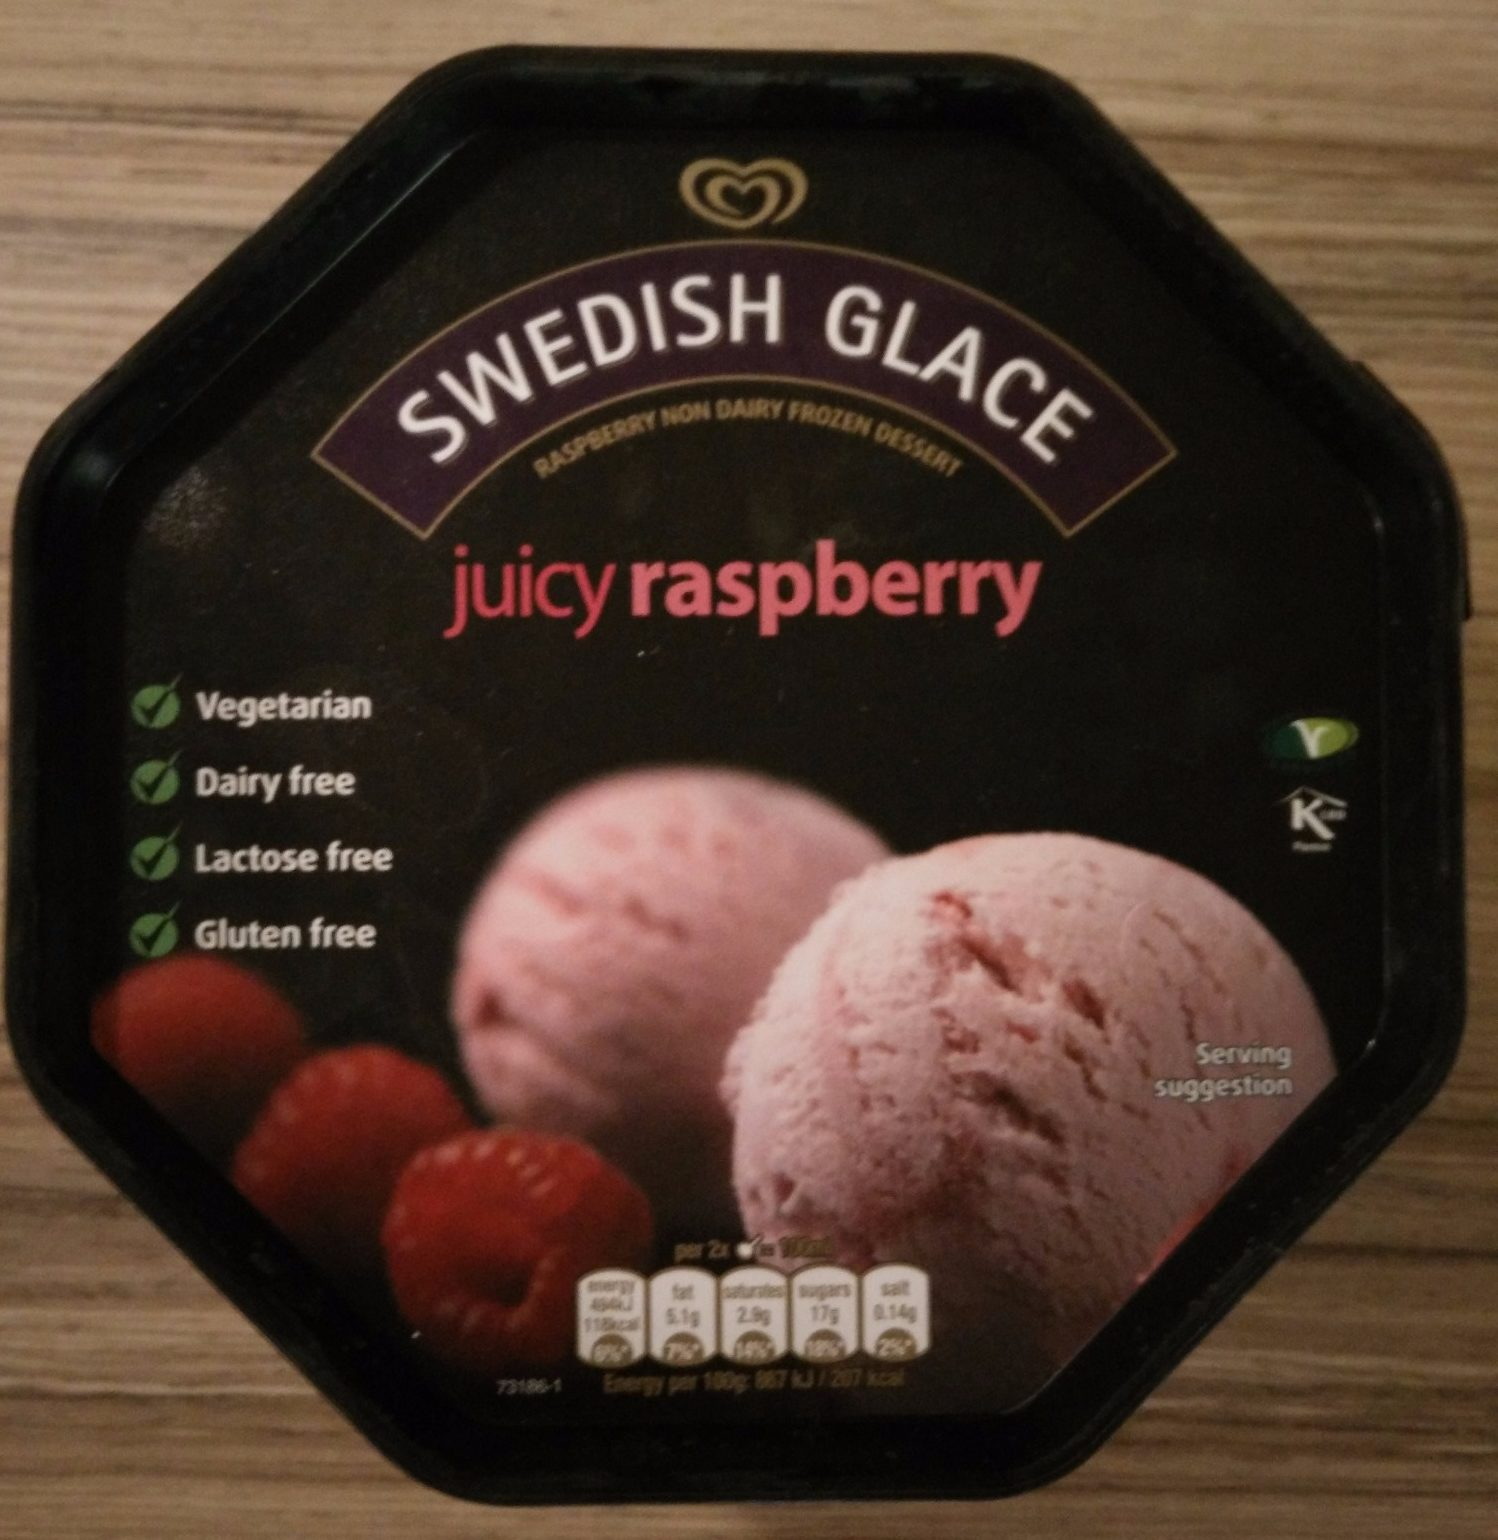 Swedish Glace Raspberry Non Dairy Frozen Dessert - Product